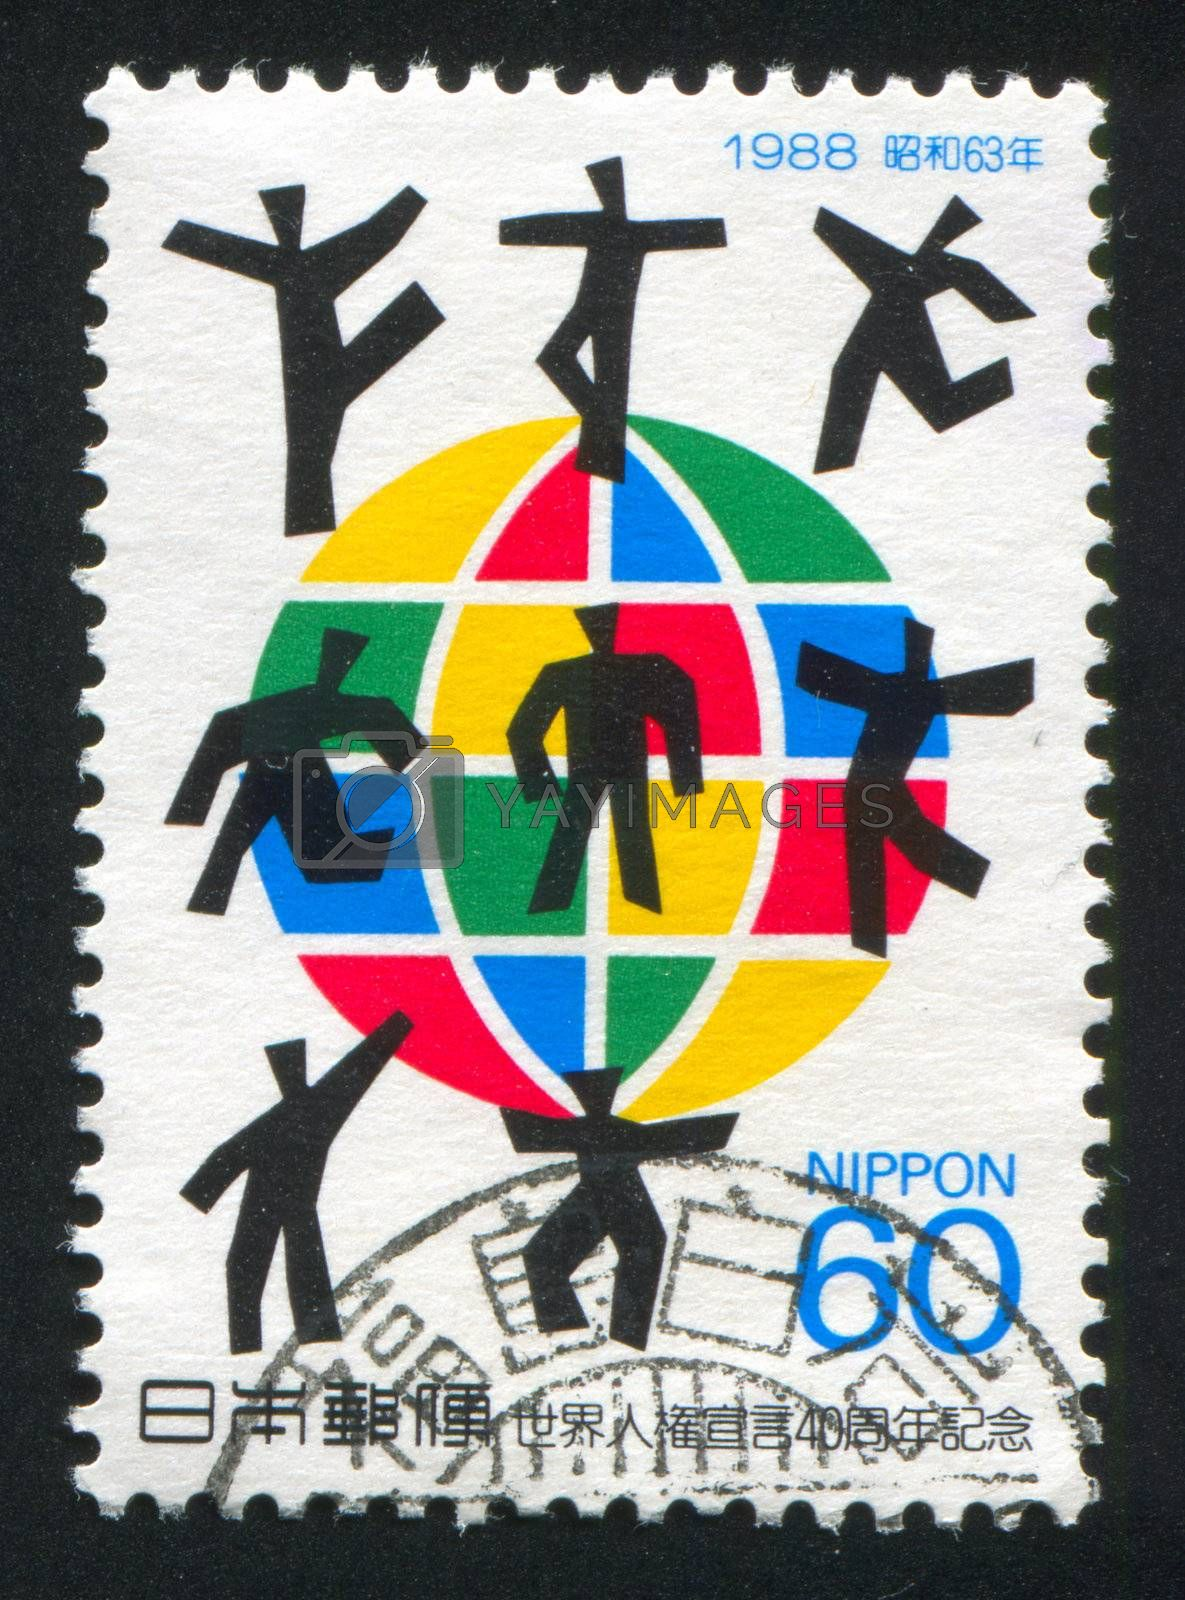 JAPAN - CIRCA 1988: stamp printed by Japan shows Globe, People, circa 1988